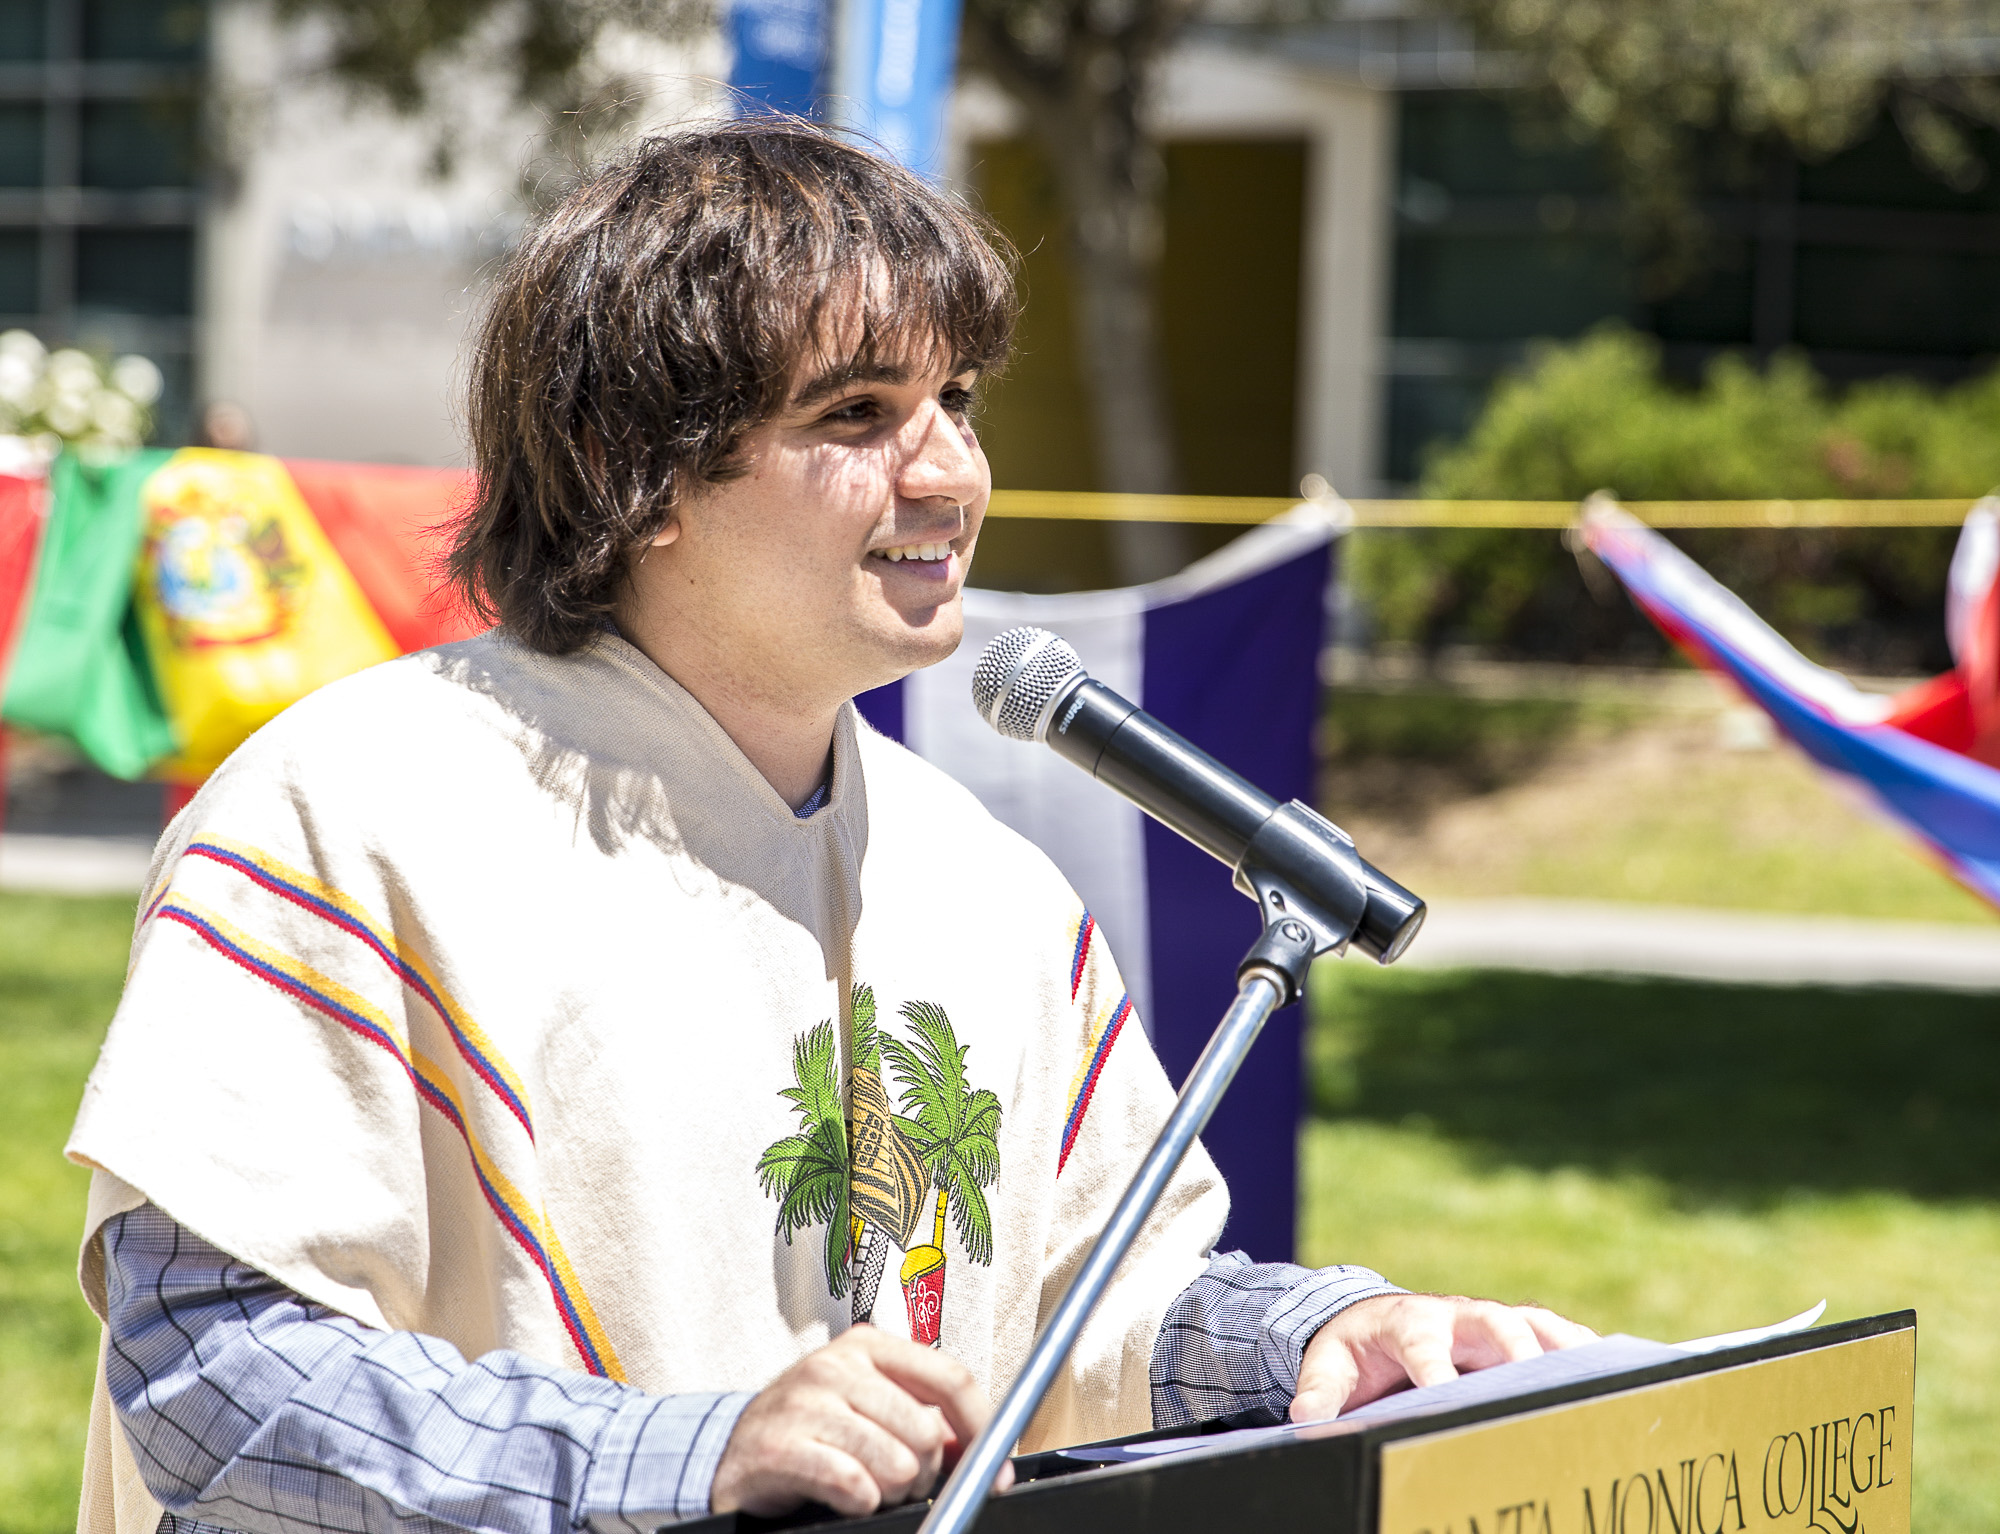 """Santa Monica College (SMC) student and President of the club """"Adelante"""" Joshua Barsky speaks to those in attendance on the importance of Cinco de Mayo and educating those that don't understand its significance during the Santa Monica College Cinco De Mayo celebration event in front of the clock tower on the SMC main campus on Thursday, May 3 2018.  This event was put together by the Santa Monica College club """"Adelante,"""" whose goal at the event was to inform students about the origins of Cinco De Mayo and put to rest the stereotypes that come with the holiday, specifically the misperception that it is a day of independence for Mexico and also that is just a drinking holiday in the United States. (Matthew Martin/Corsair Photo)"""